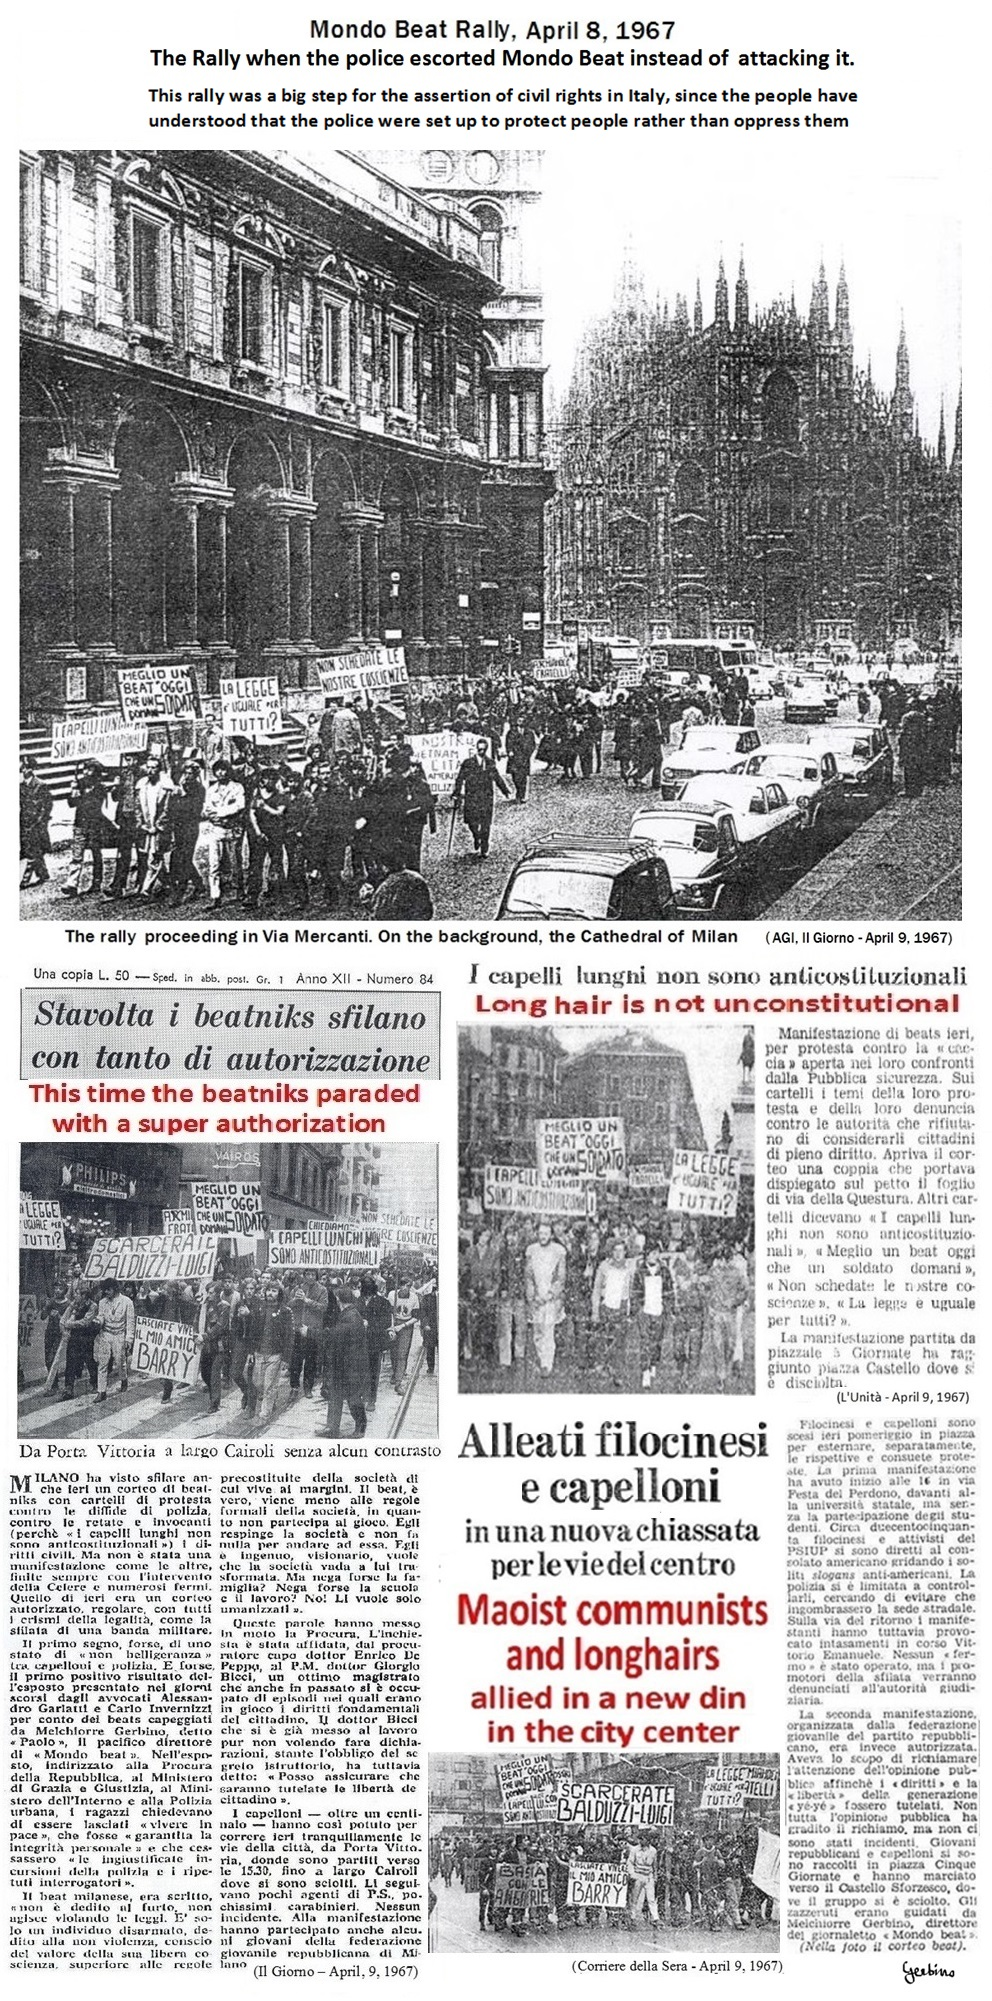 Both events, the complaint against the police headquarters and the authorized demonstration, had extensive media coverage